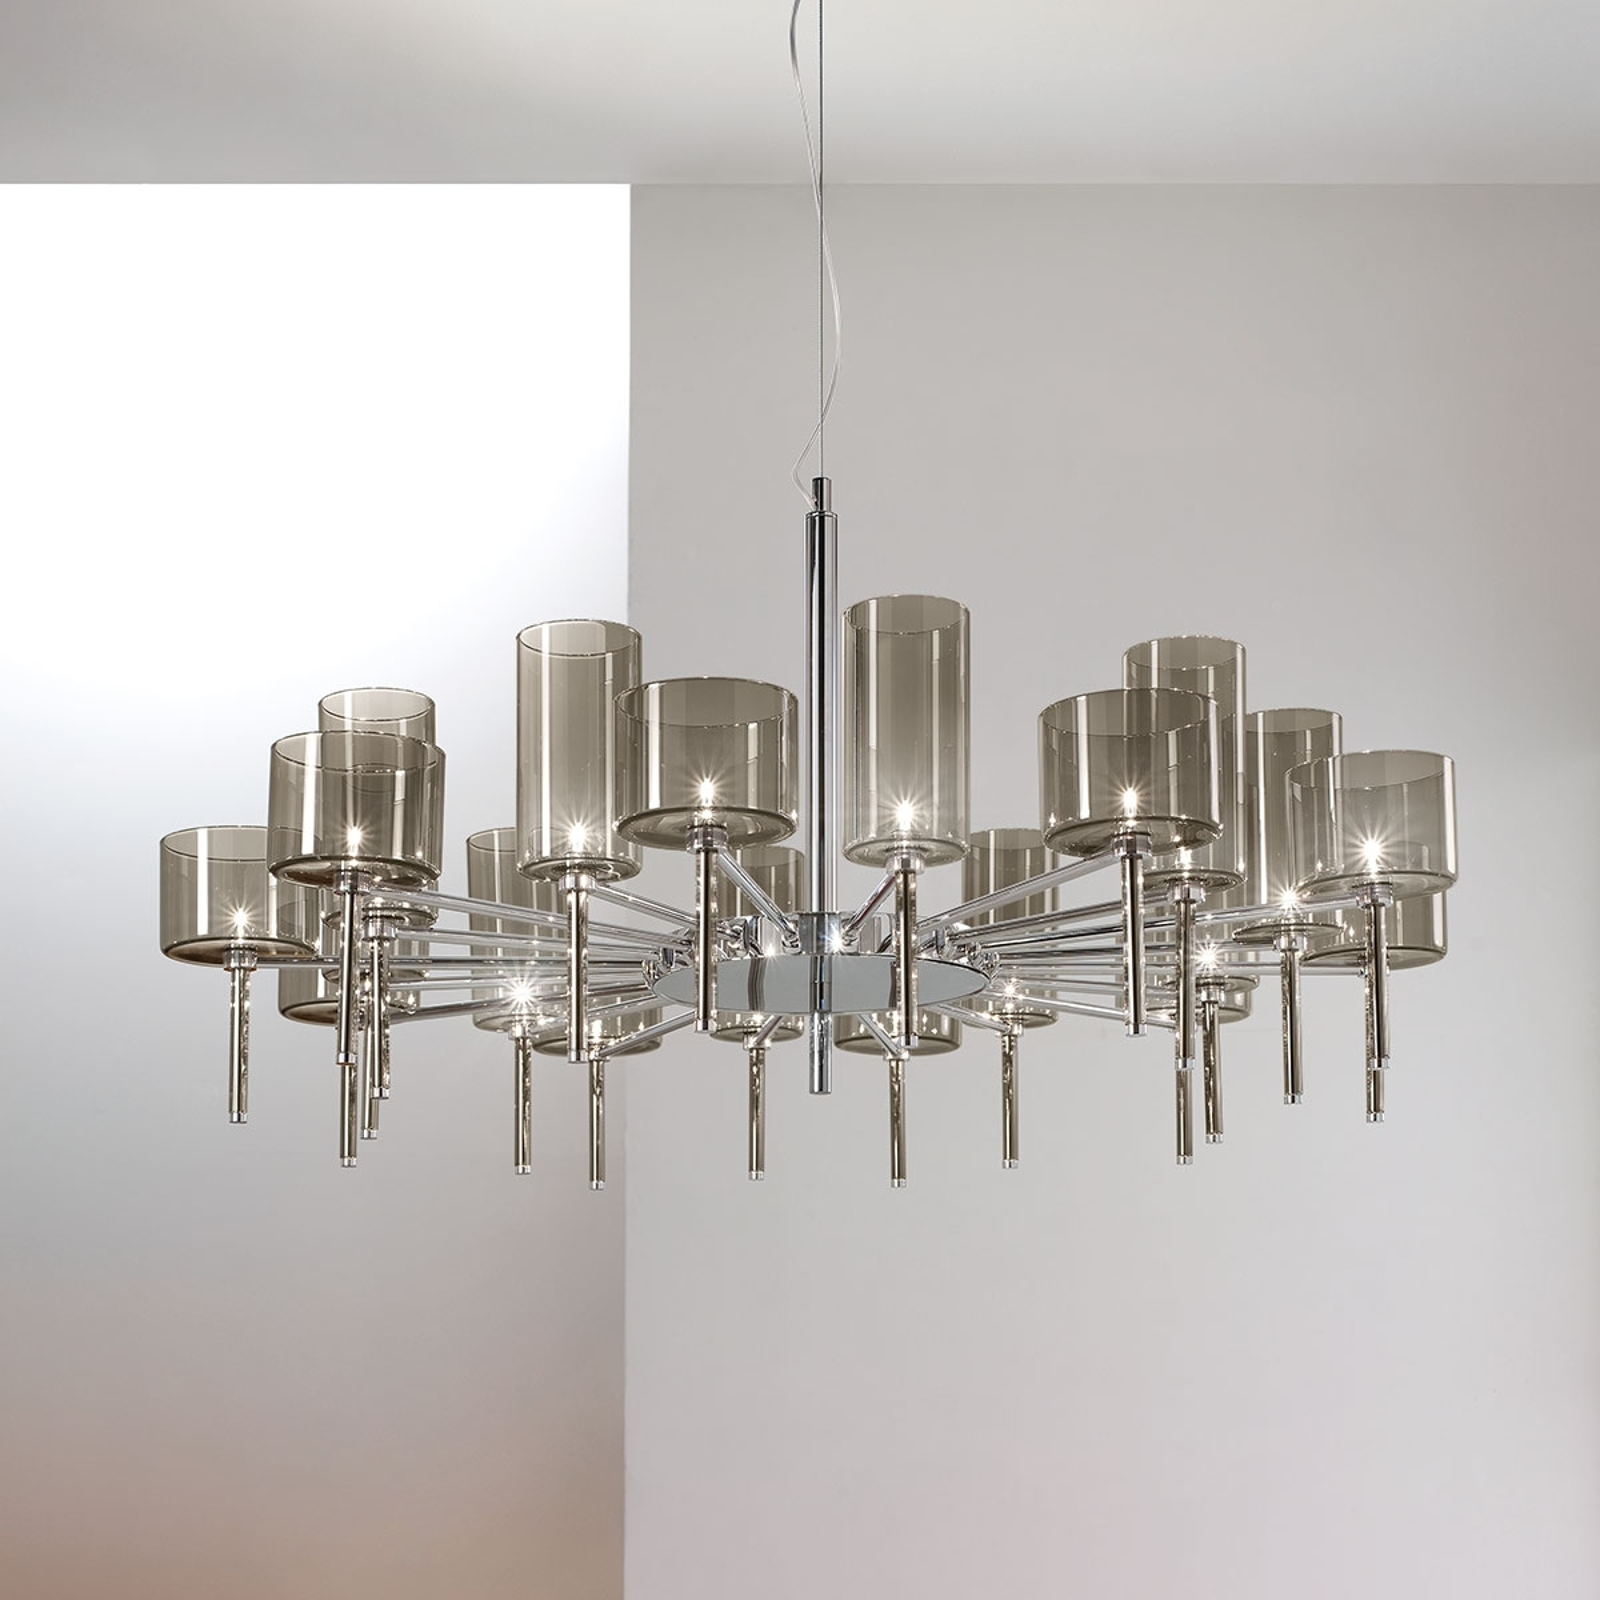 Designer chandelier Spillray with glass shades_1088049_1